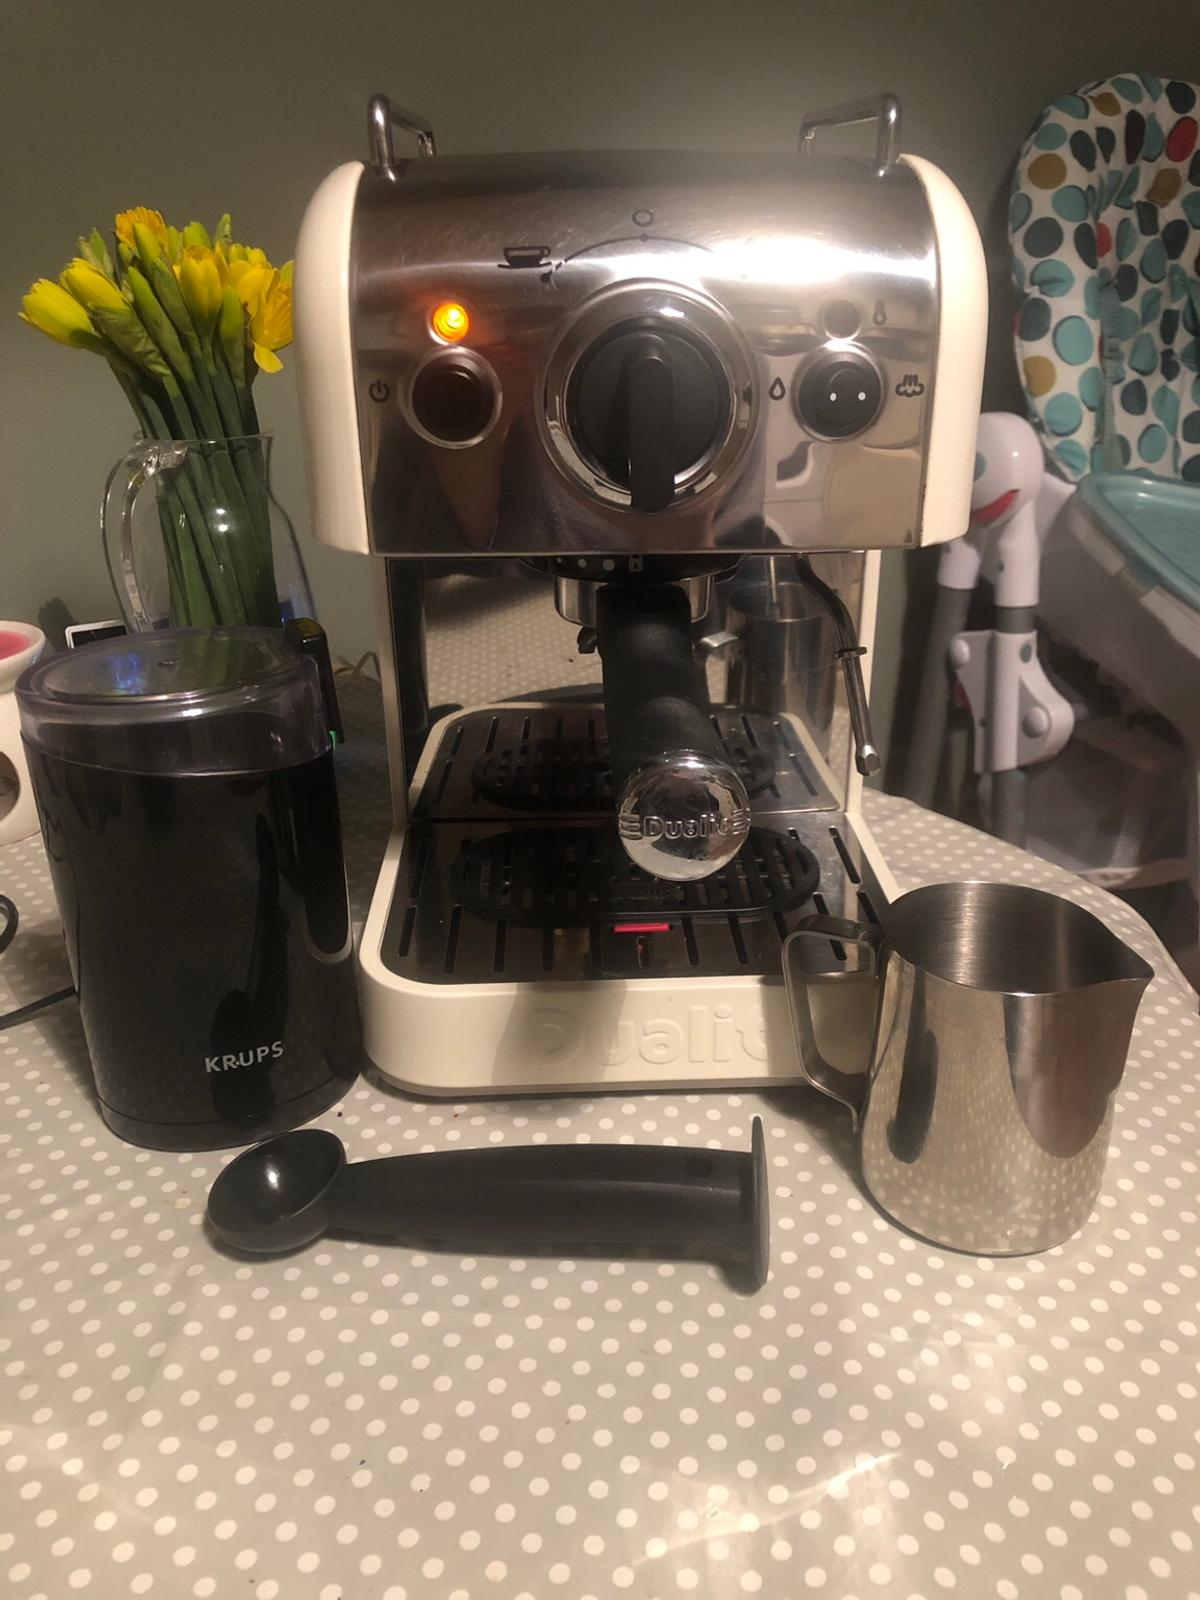 Dualit Coffee Machine In Dh8 Consett For 8000 For Sale